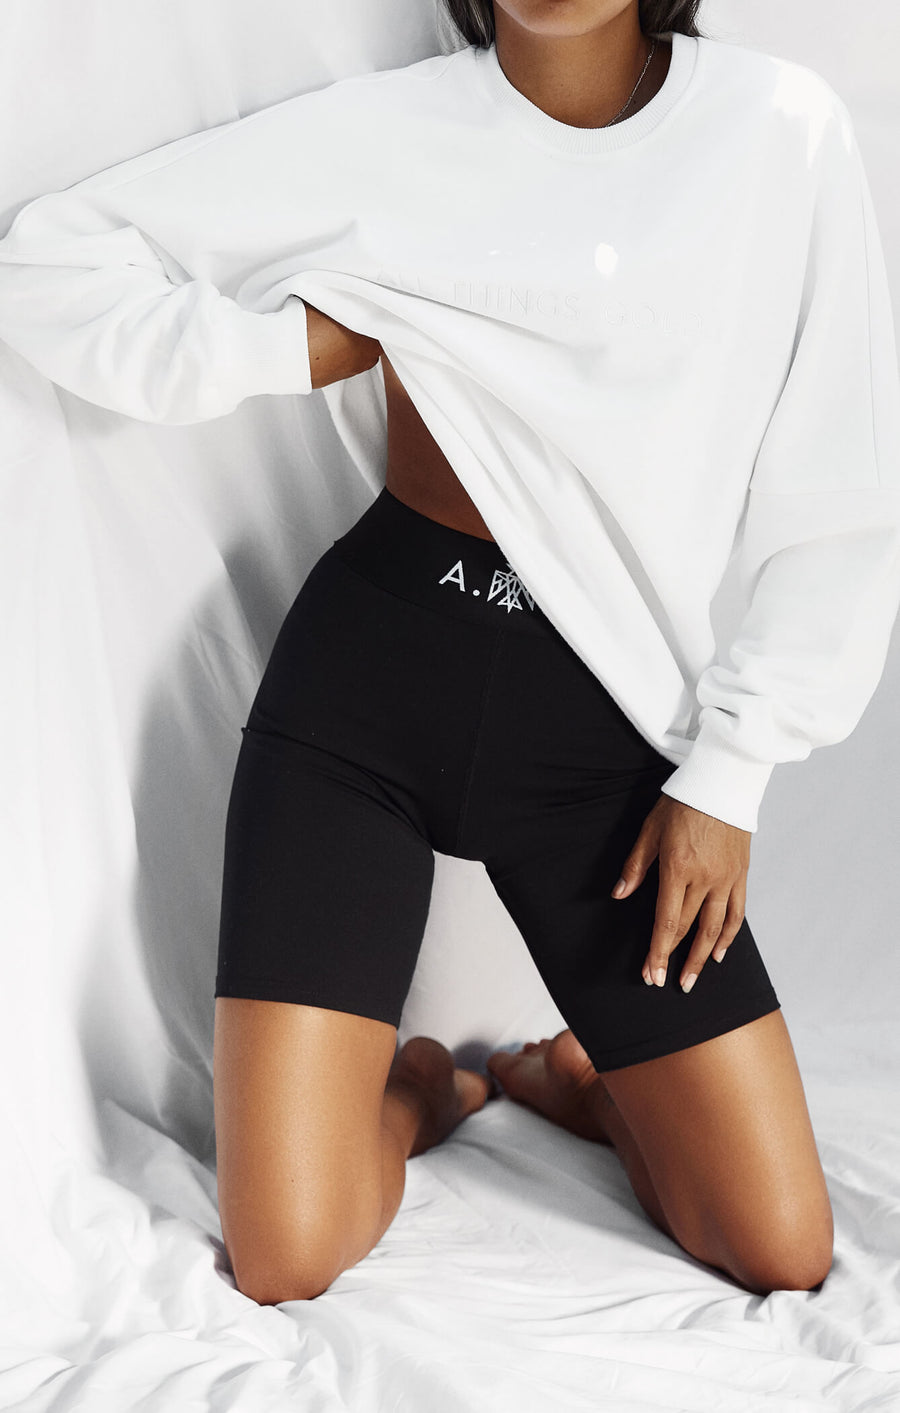 THE A.T.G BIKE SHORTS